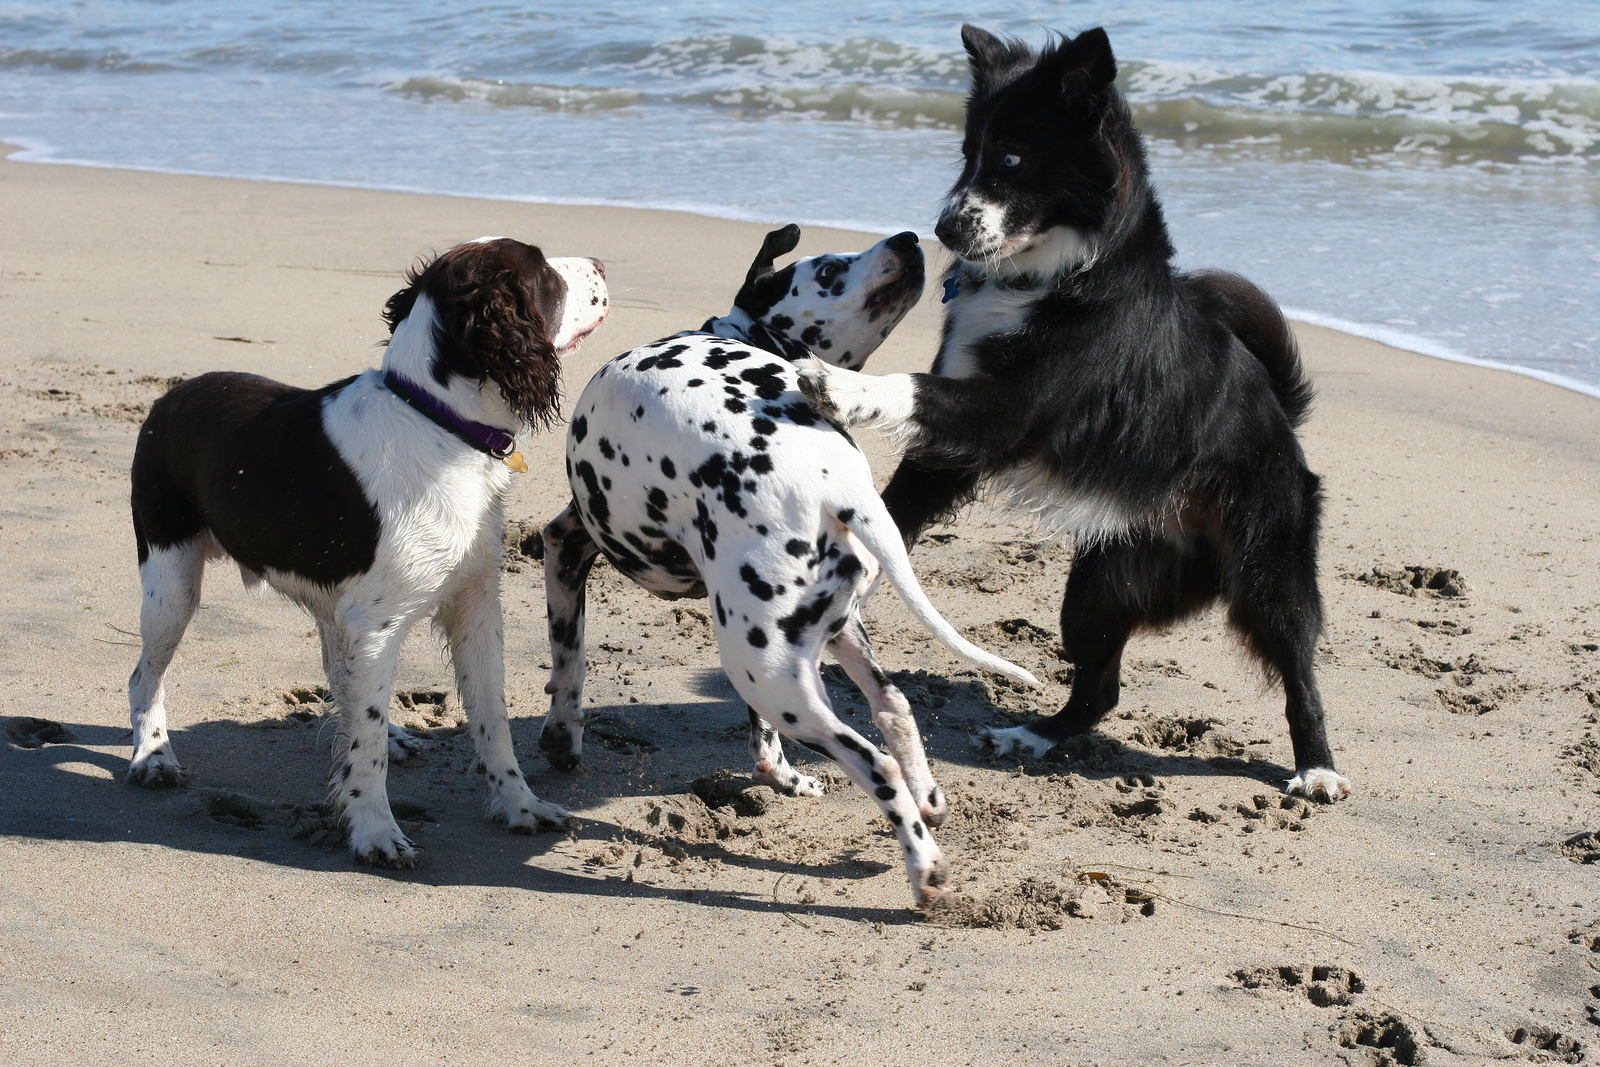 bigstockphoto__dogs_playing_183968-from-dell-2016